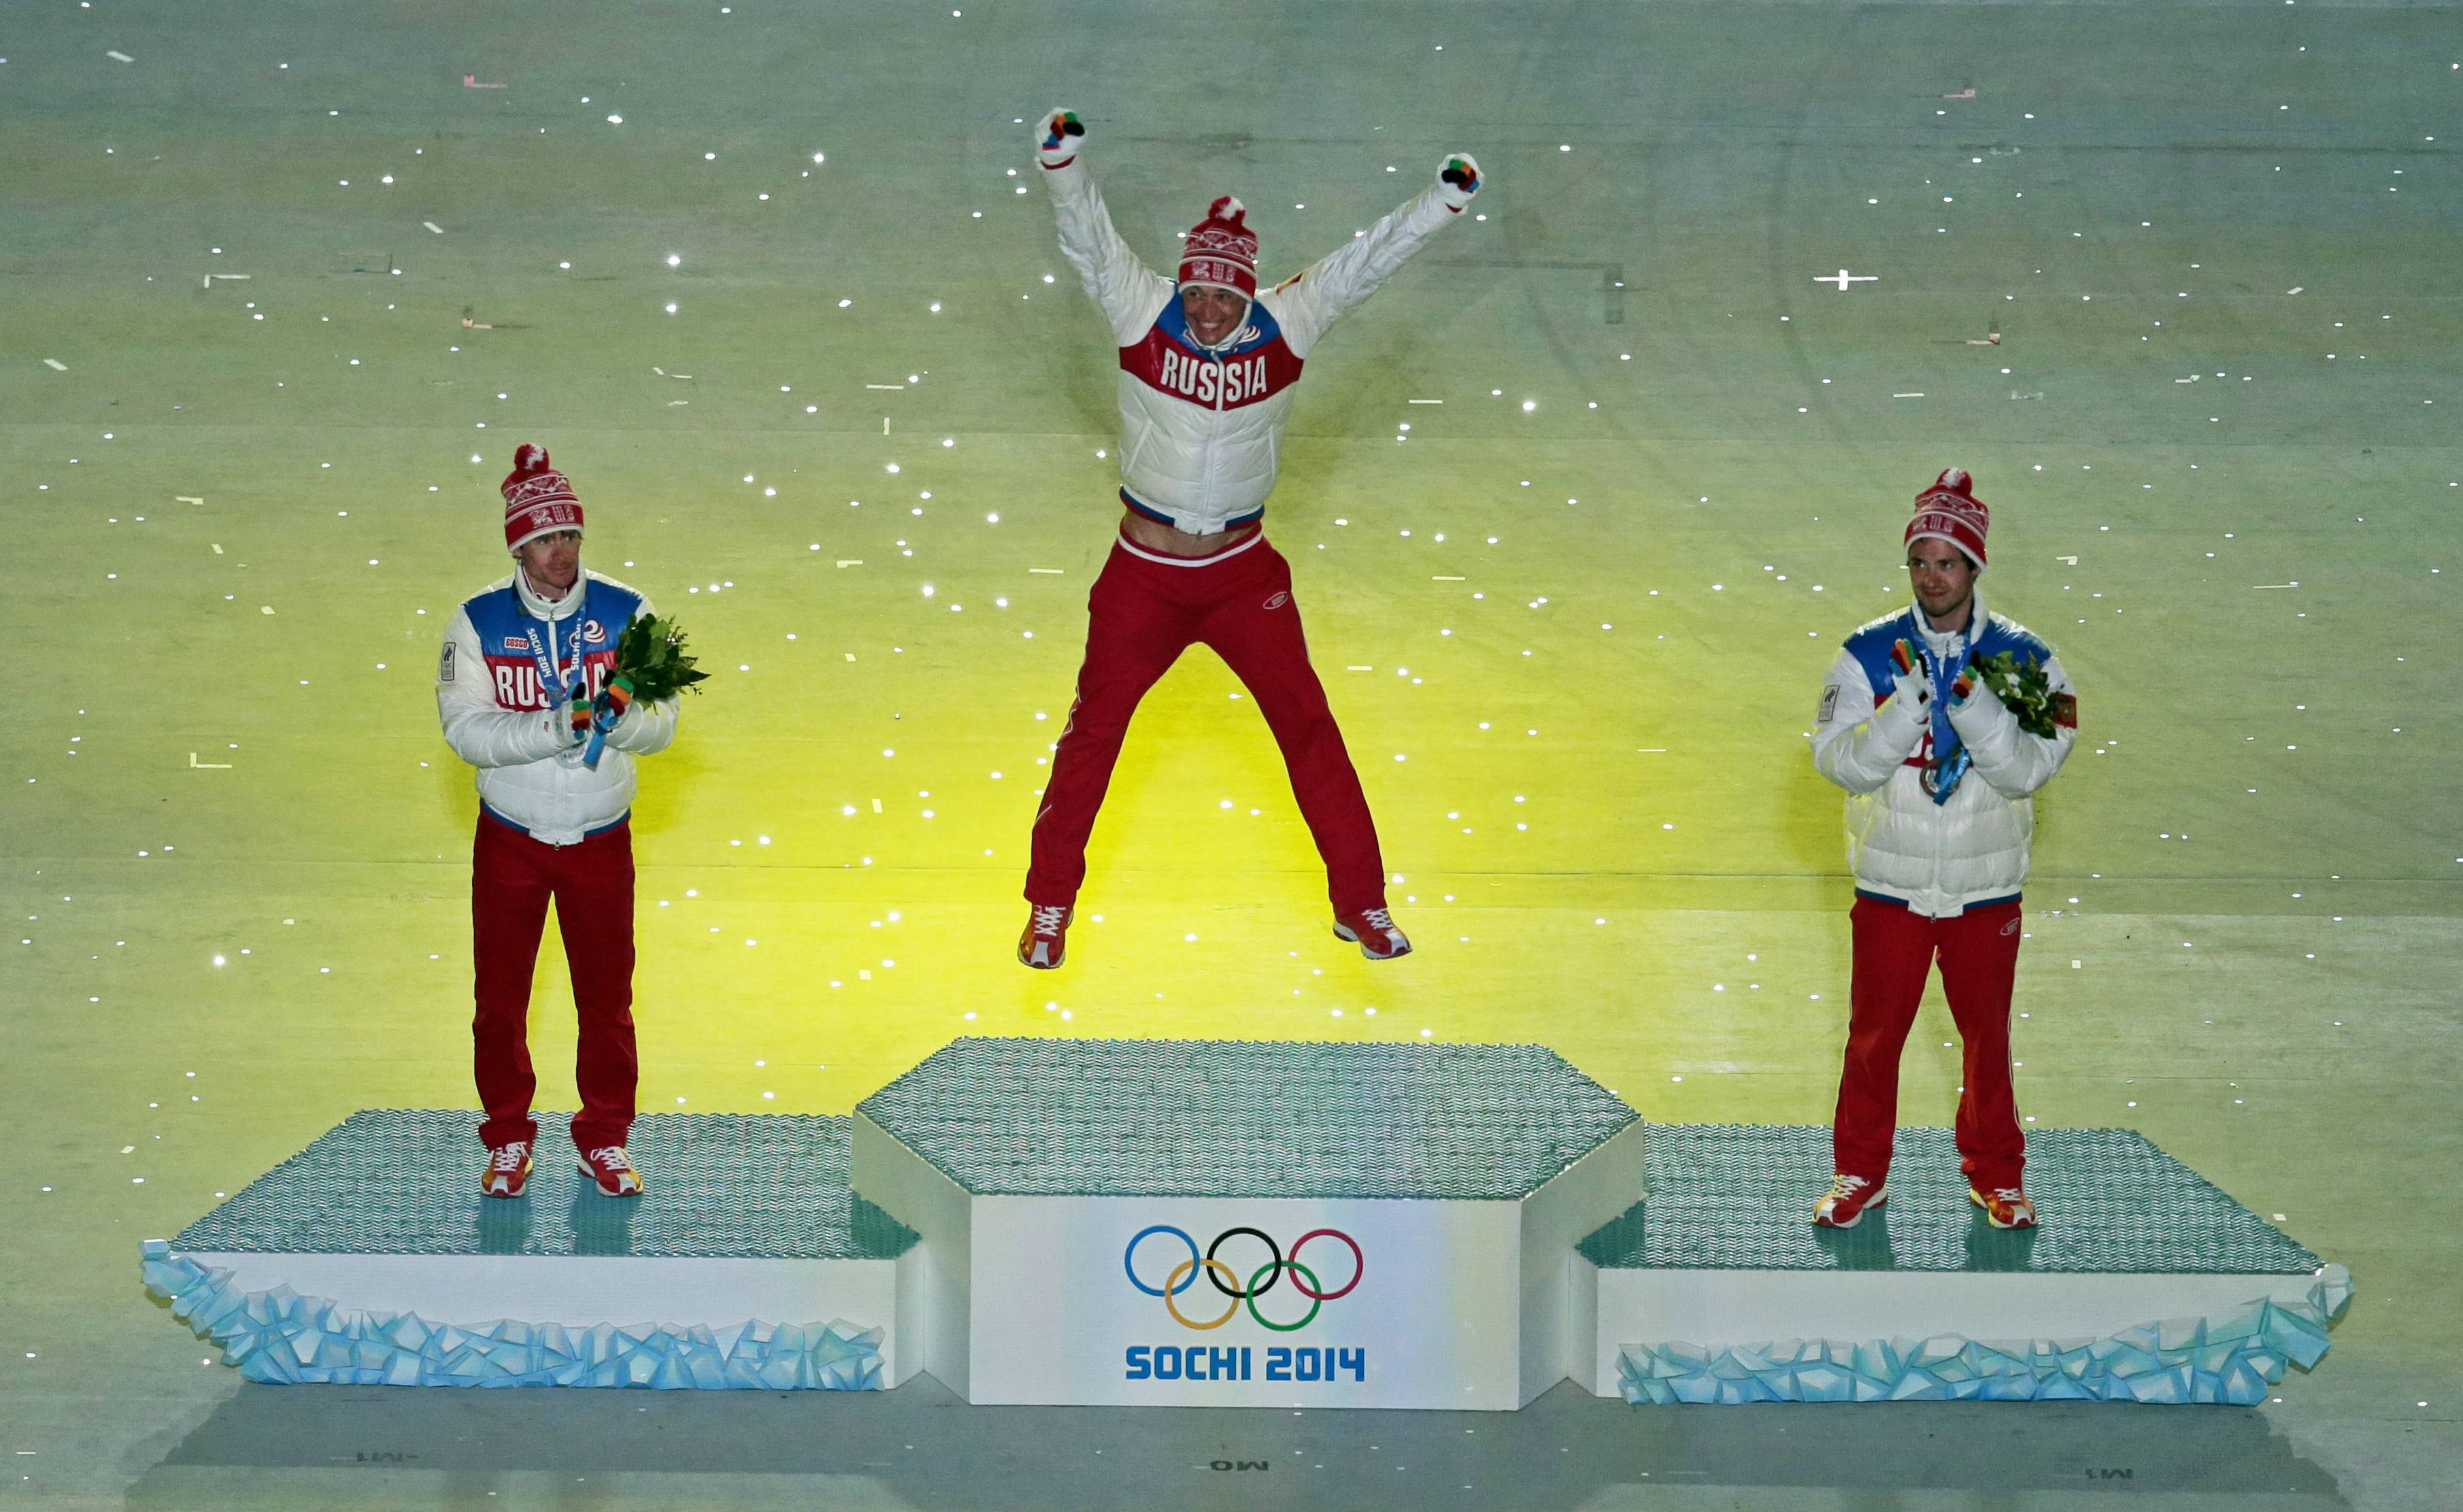 Russia's gold medal winner Alexander Legkov, center, with compatriots silver medal winner Maxim Vylegzhanin, left, and bronze medal winner Ilia Chernousov during the medal ceremony for the men's 50-kilometer cross-country race during the closing ceremony of the 2014 Winter Olympics, Sunday, Feb. 23, 2014, in Sochi, Russia.